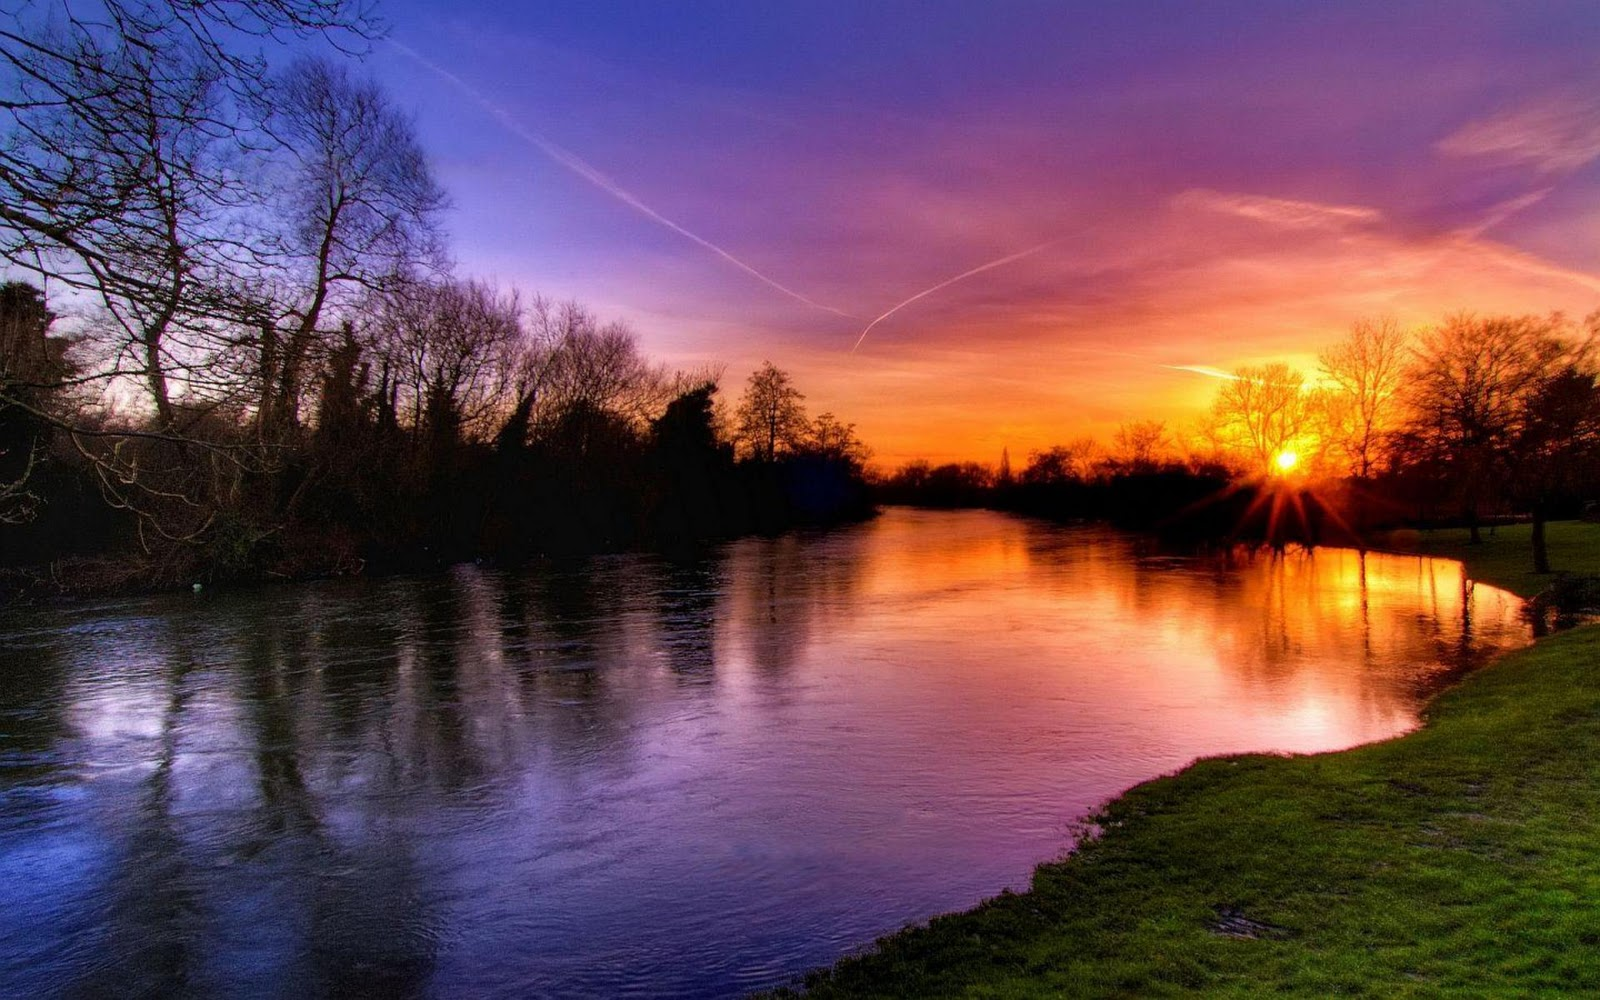 amazing sunset in near the lake hd wallpapers hd wallpaper